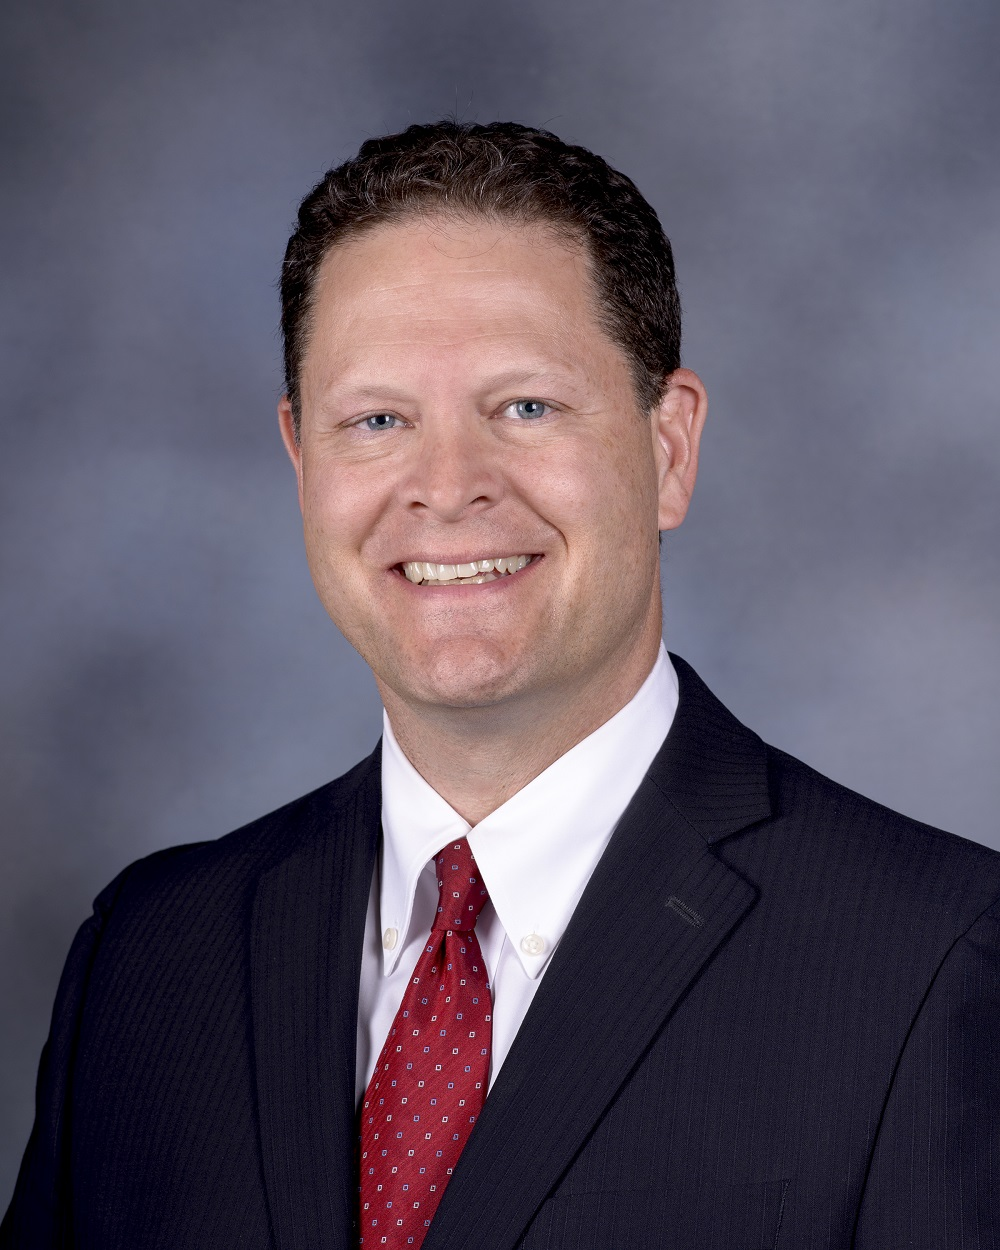 UofL physiatry chief named president of national professional organization